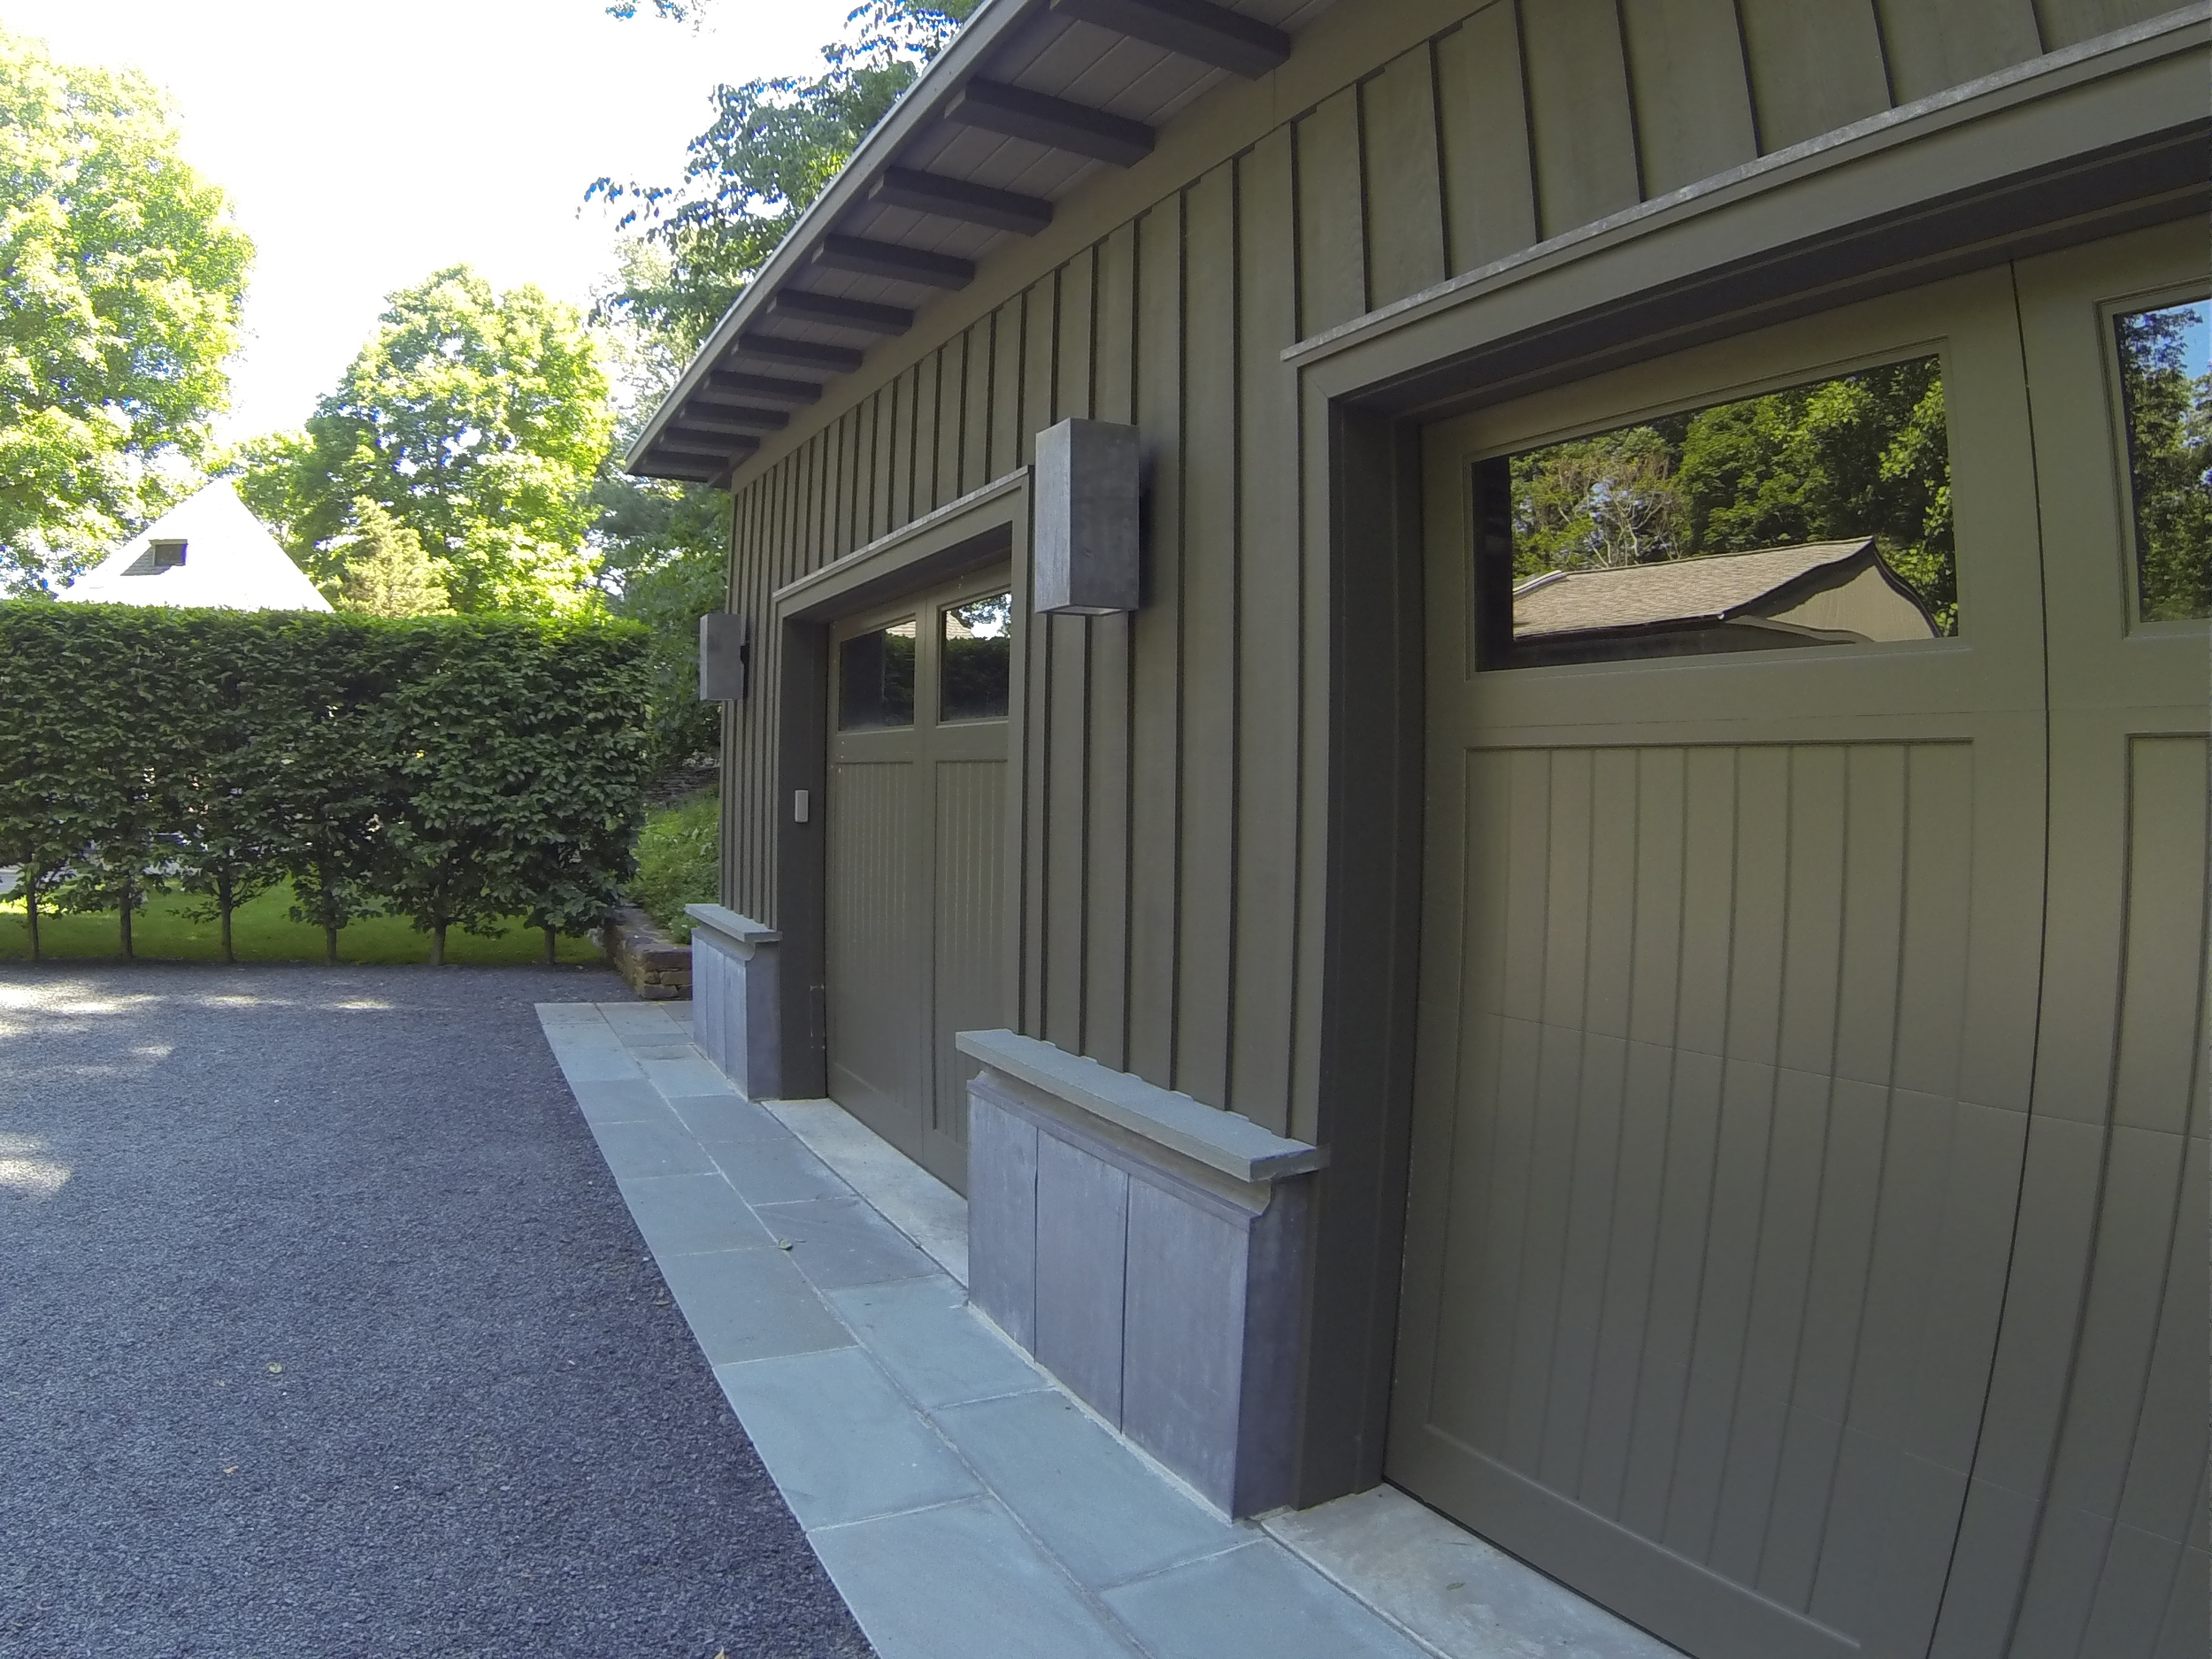 We love the little design details of the garage that greets visitors in a turn-around parking bay and the hornbeam hedge.